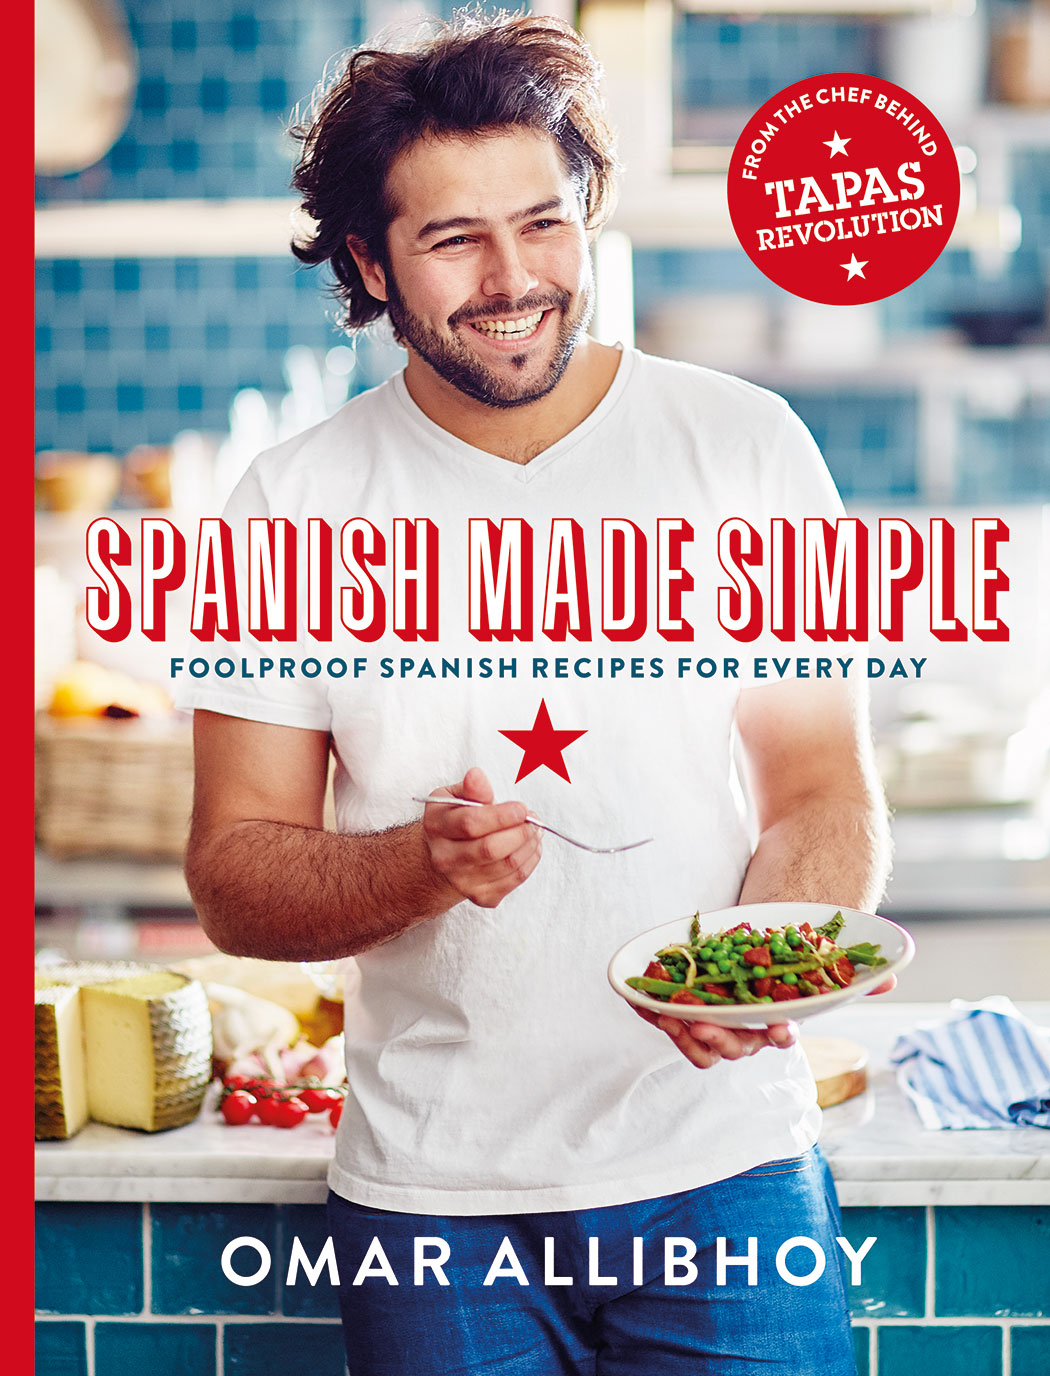 Omar Allibhoy, Spanish Made Simple book